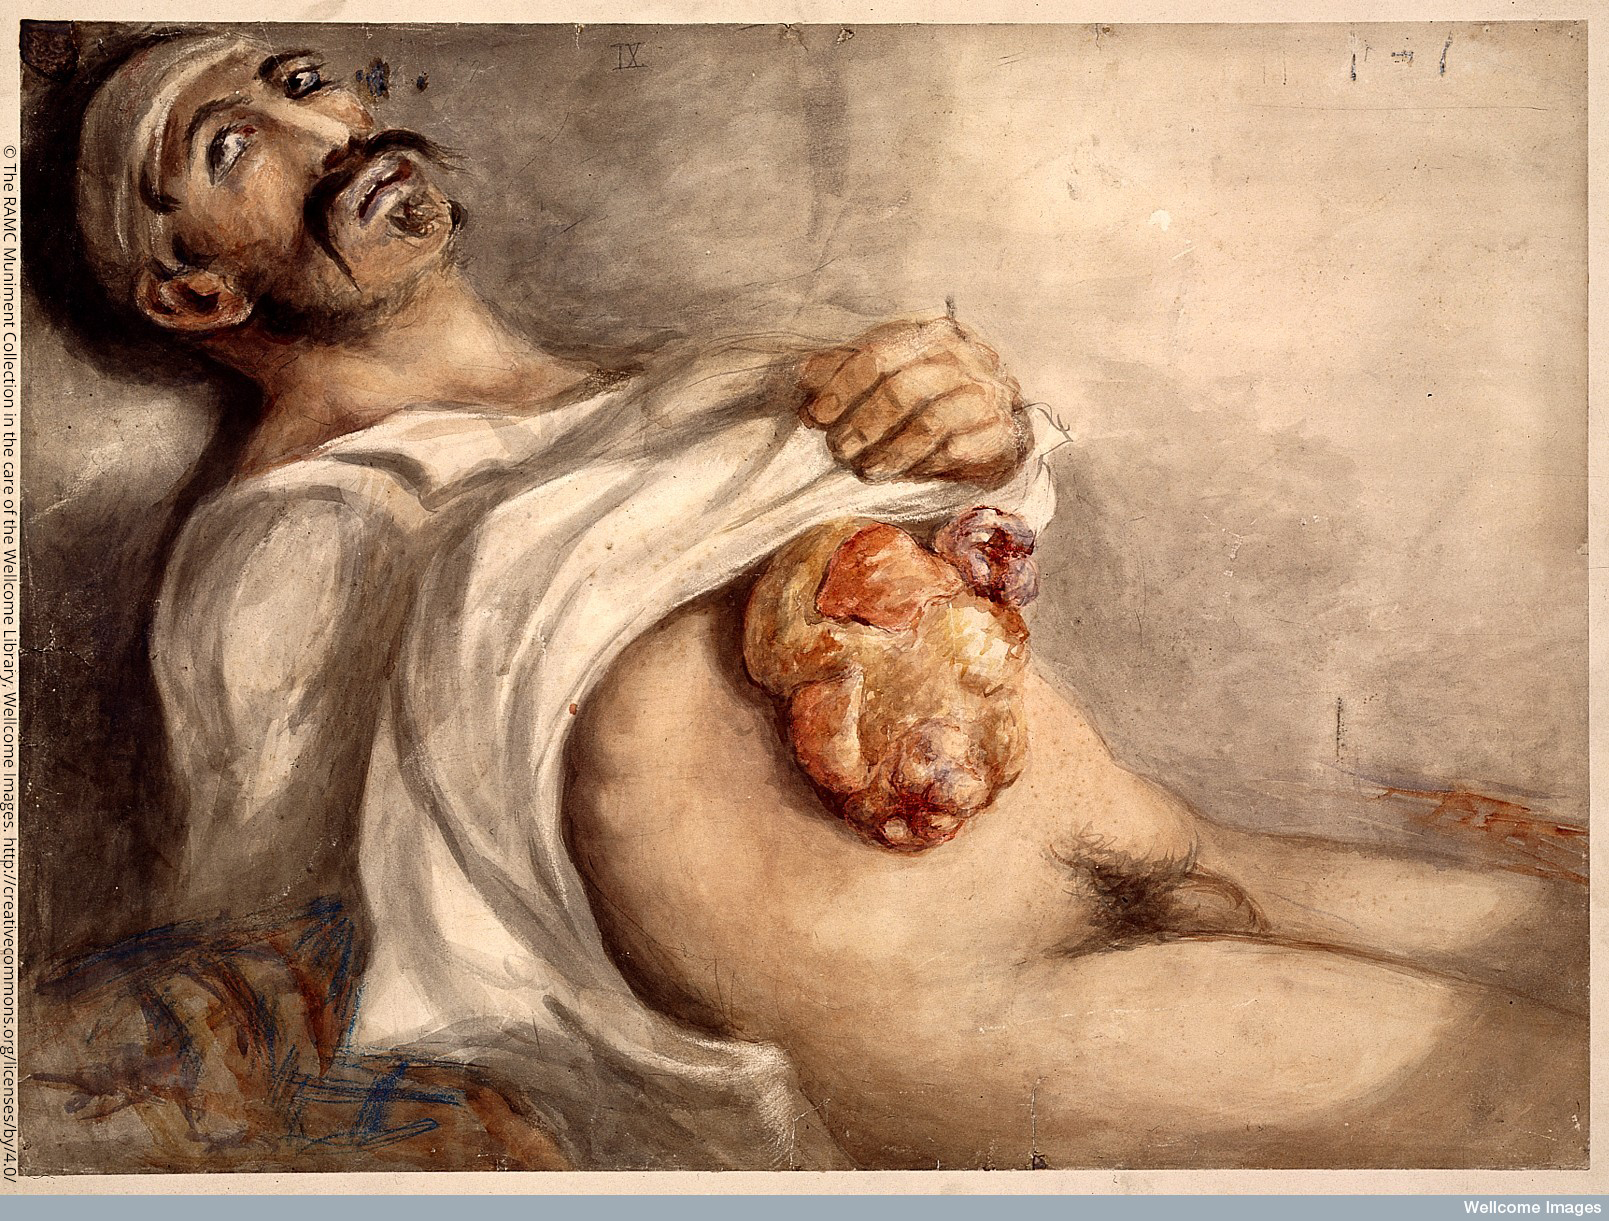 The RAMC Muniment Collection in the care of the Wellcome Library, Wellcome Images Soldier suffering from a stomach wound to abdomen. Wounded at the battle of Waterloo. Watercolour 1815